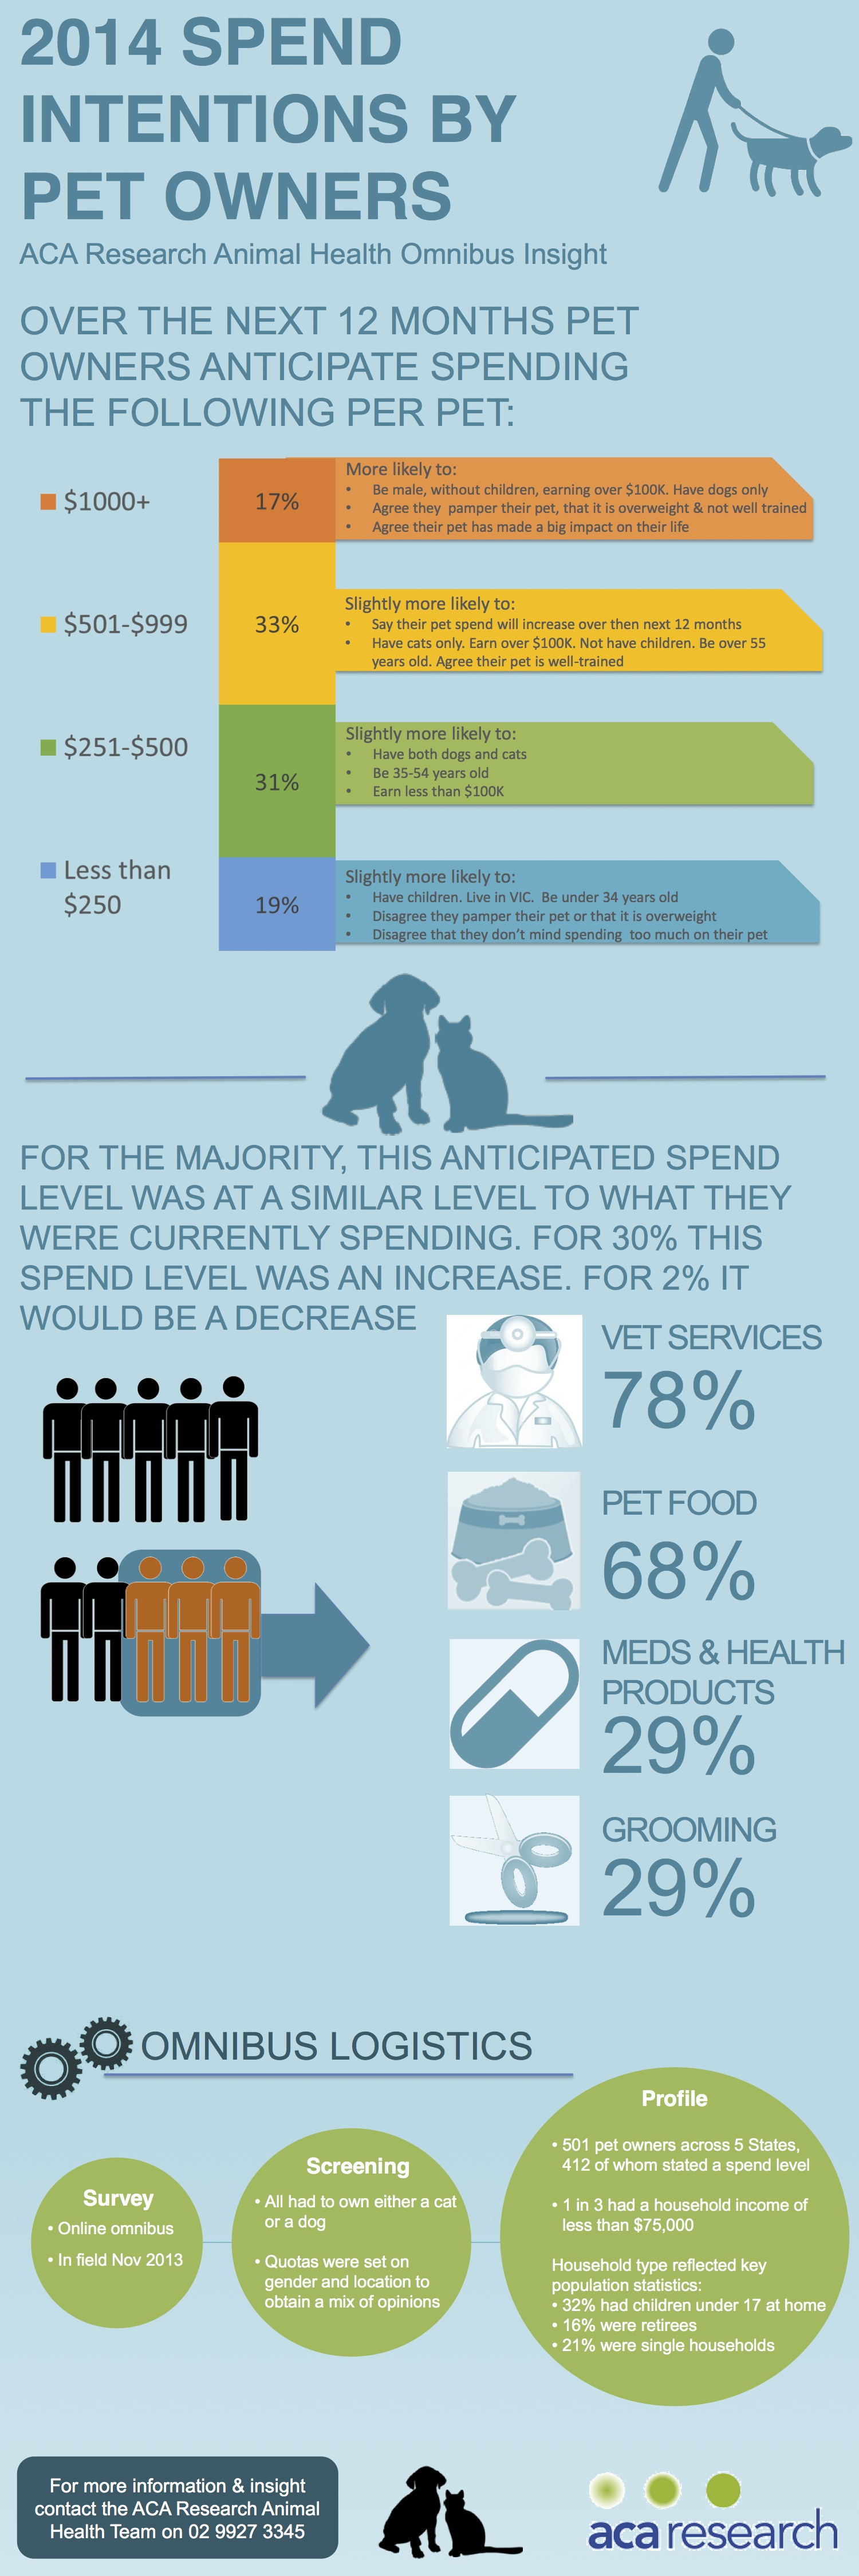 2014 Spend Intentions by Pet Owners